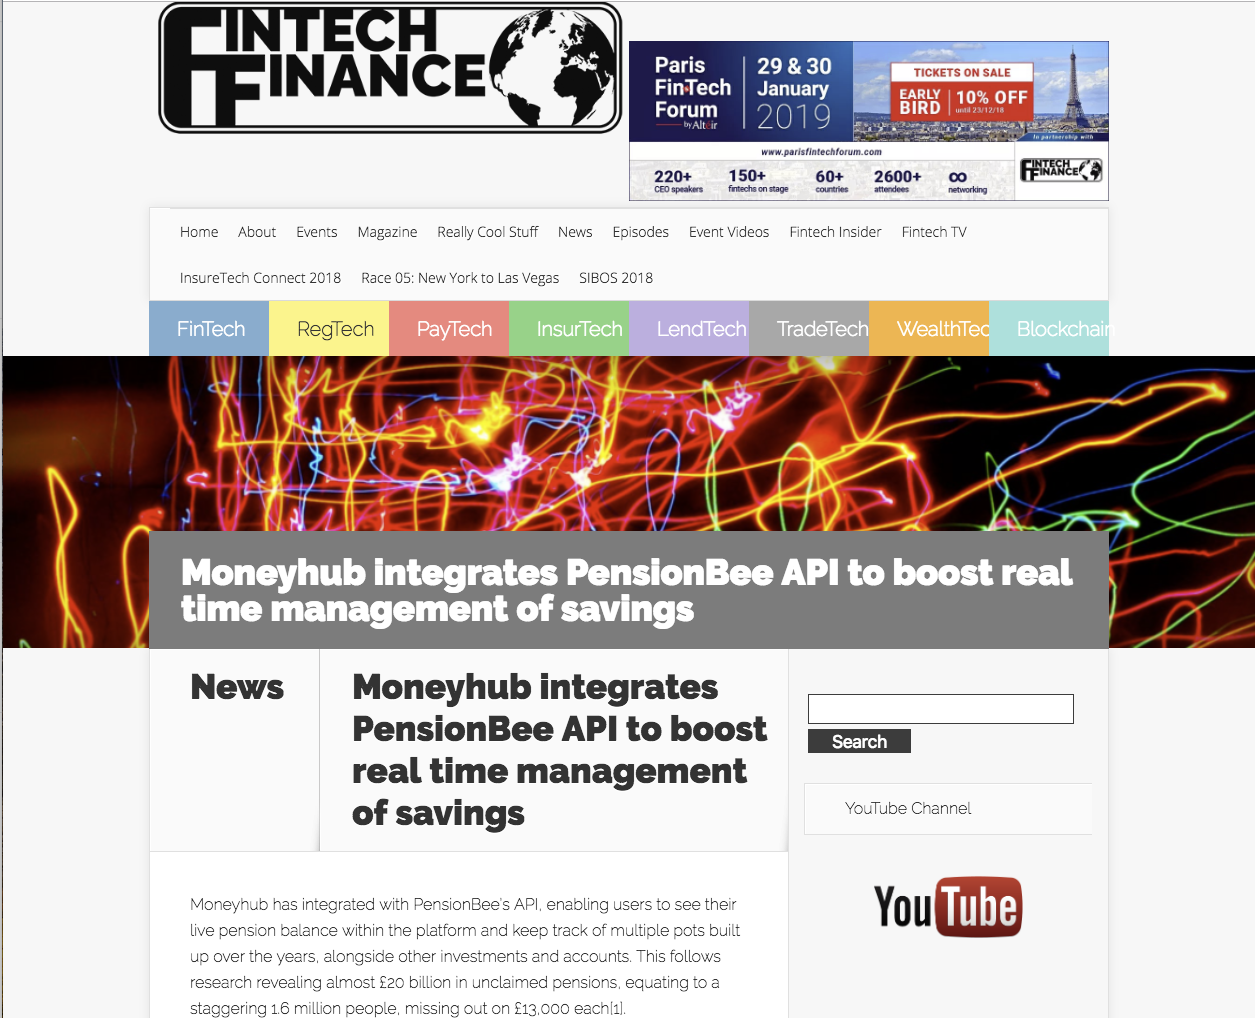 Fintech-Finance-article-Nov2018.png